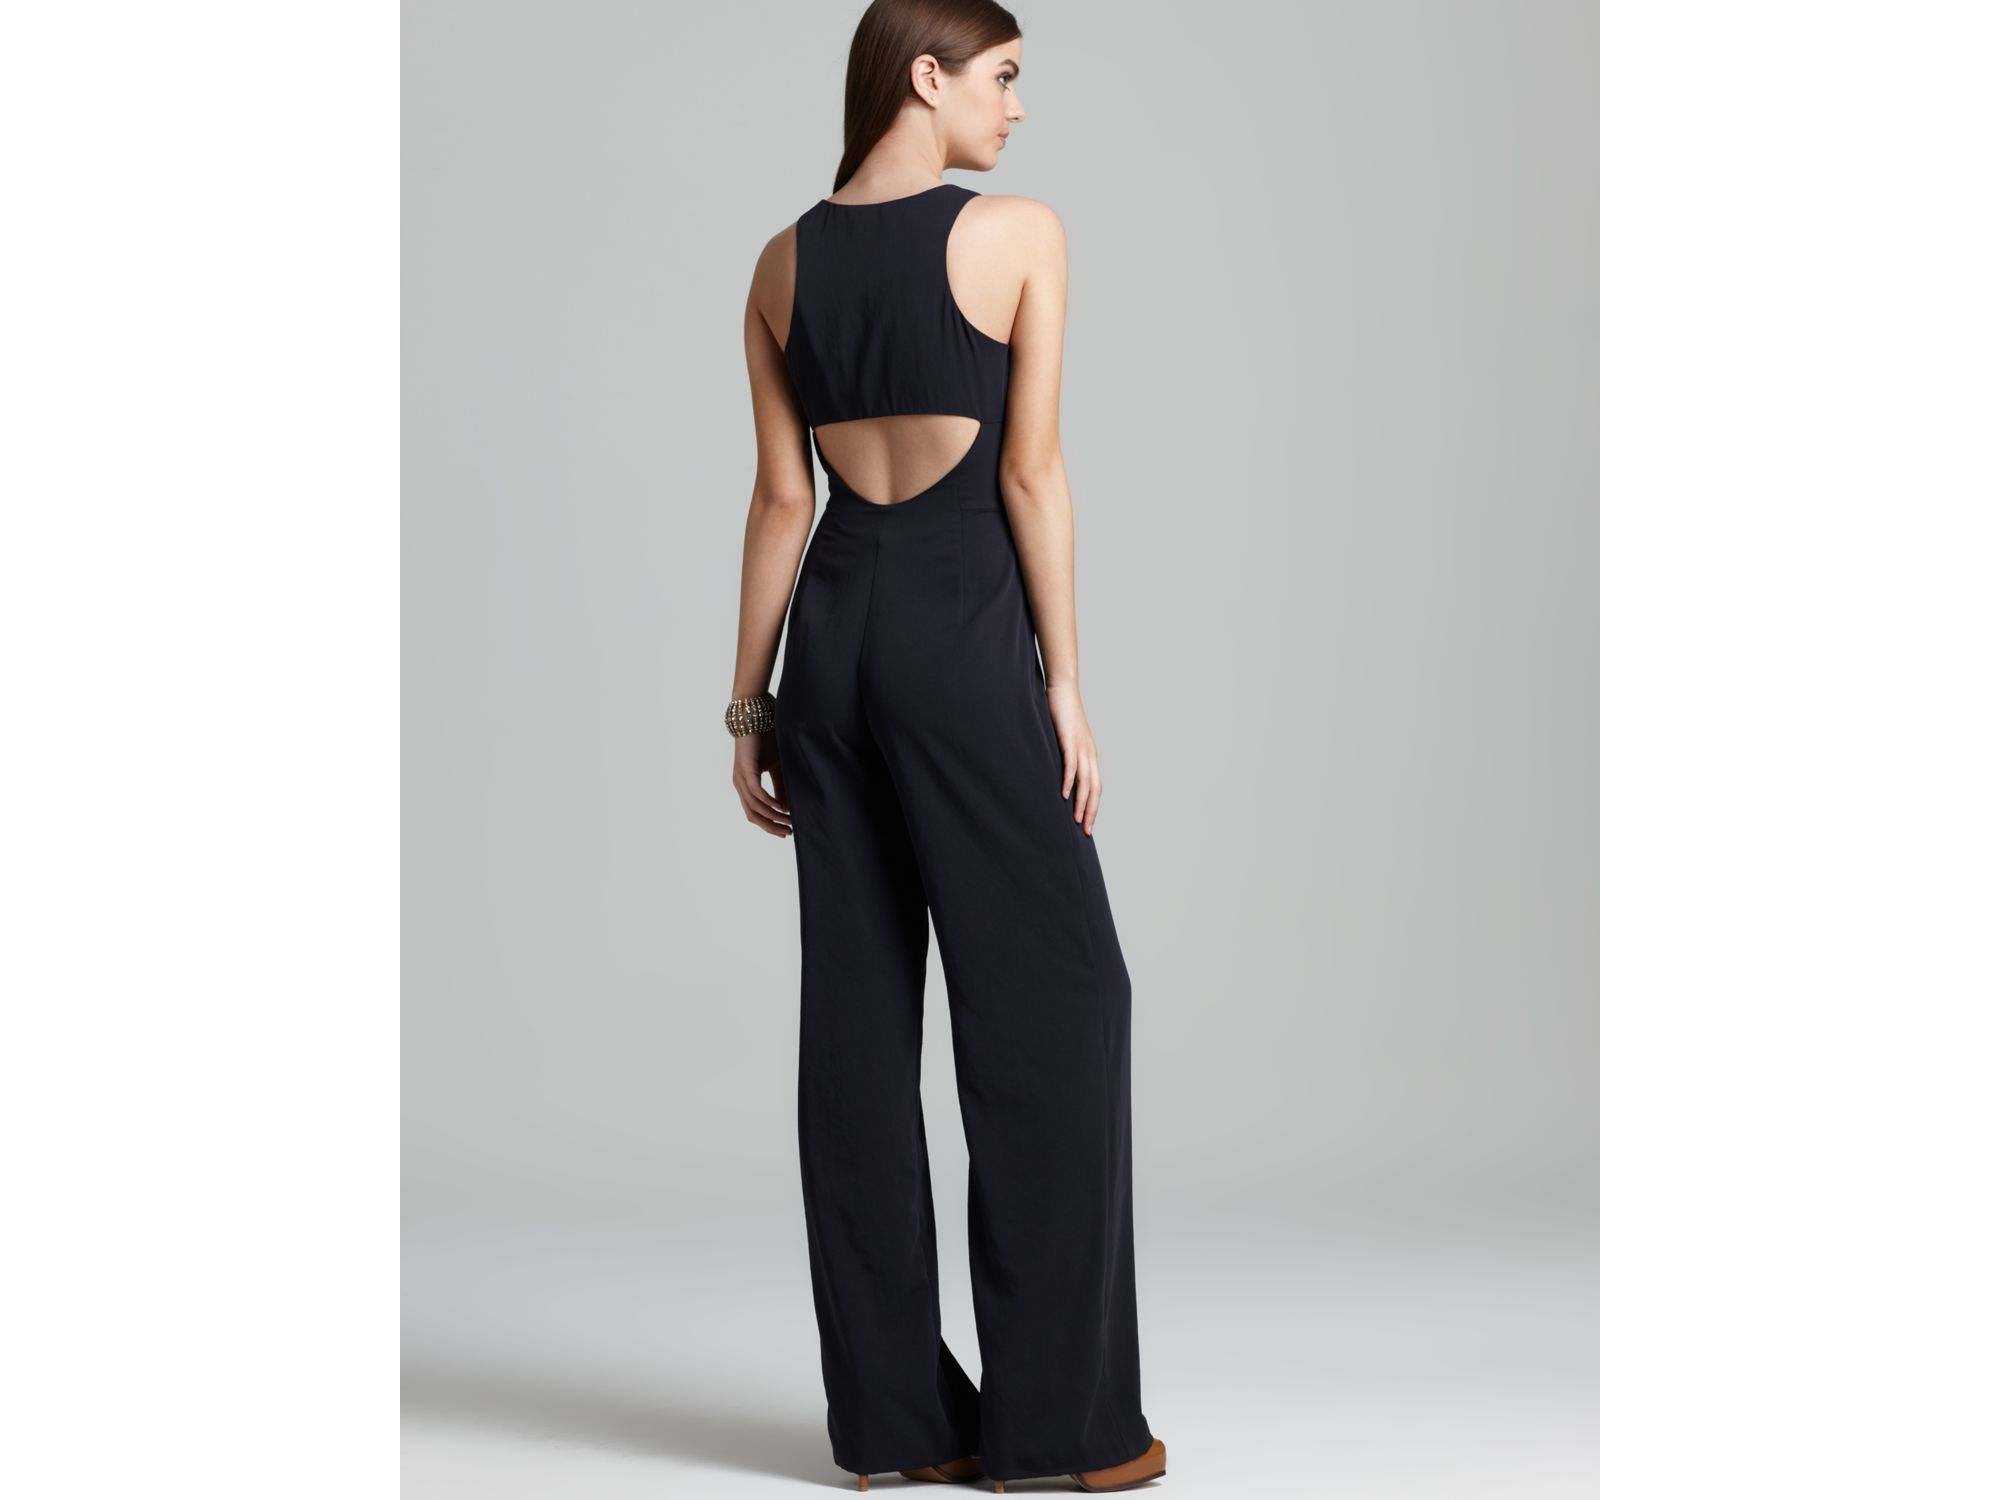 462830a4e87 Lyst - Theory Jumpsuit Lindla P Madera in Blue